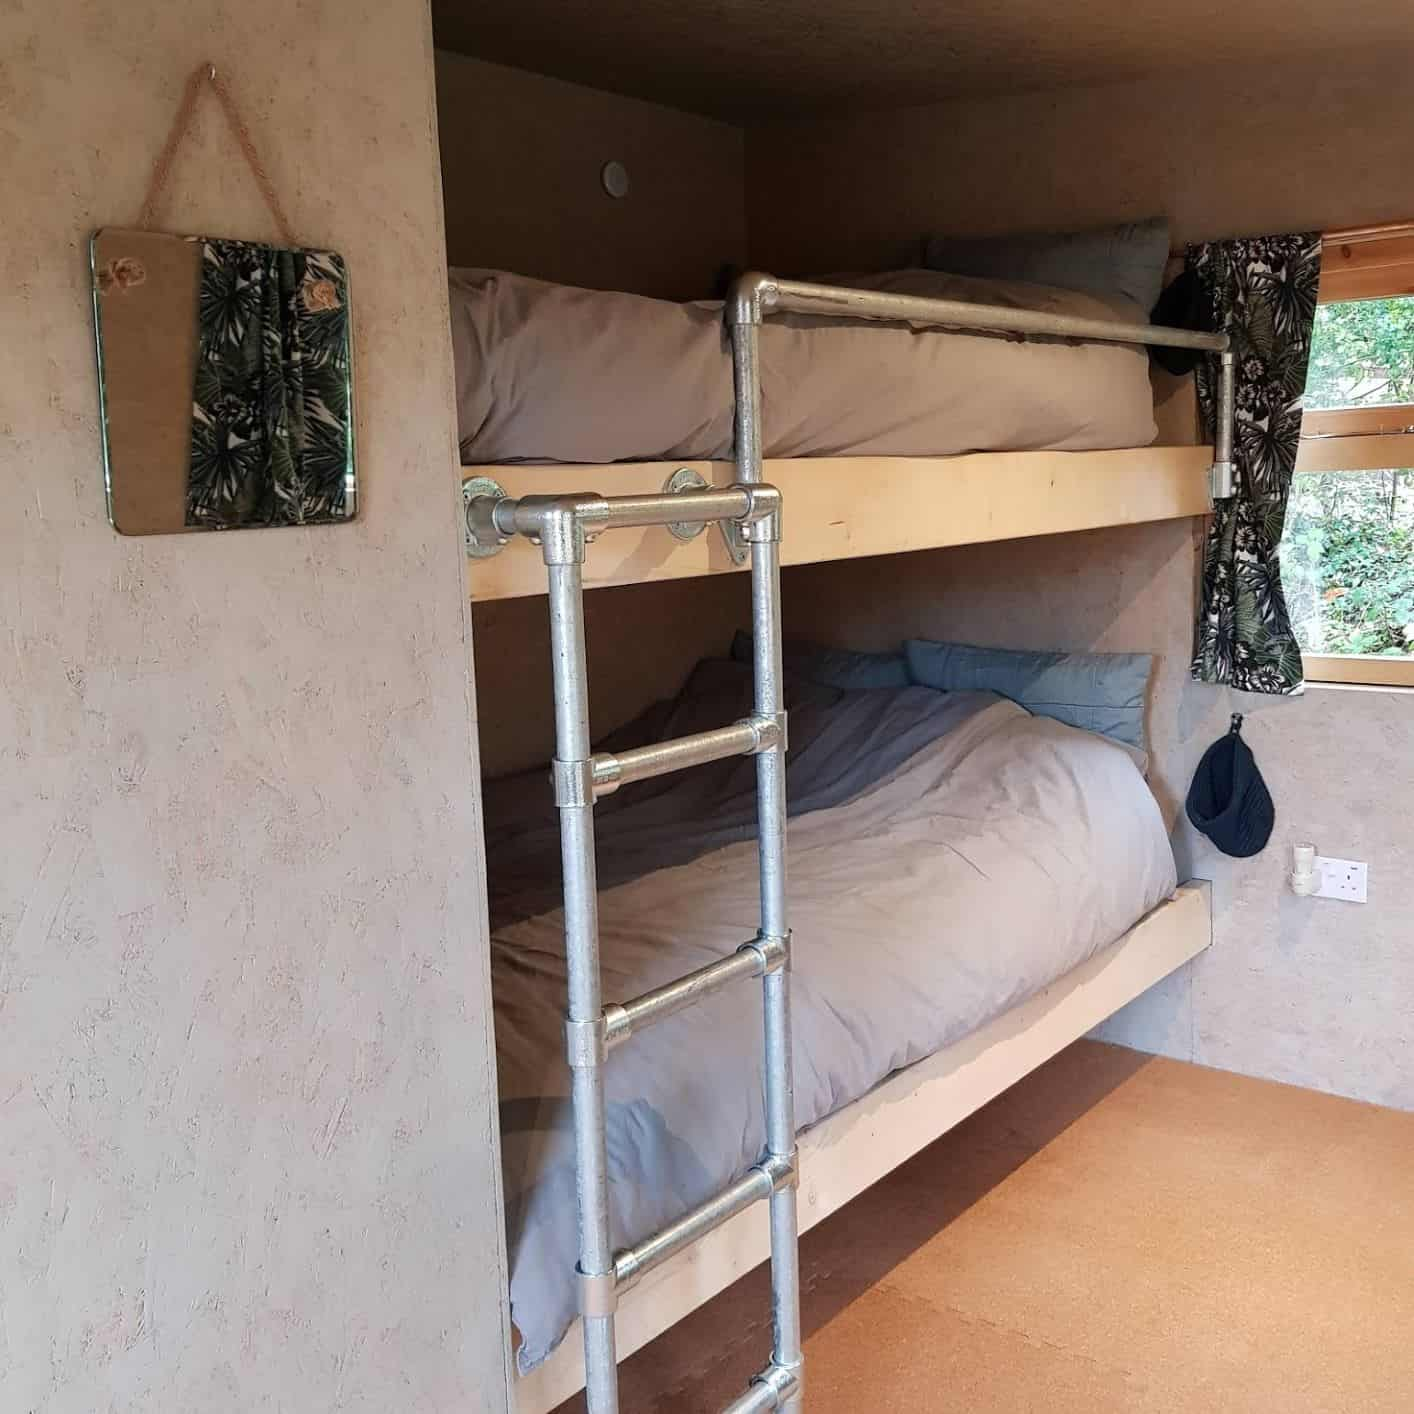 Big (4ft), comfy bunk beds with bedding. Lots of room for one and plenty of room for two.